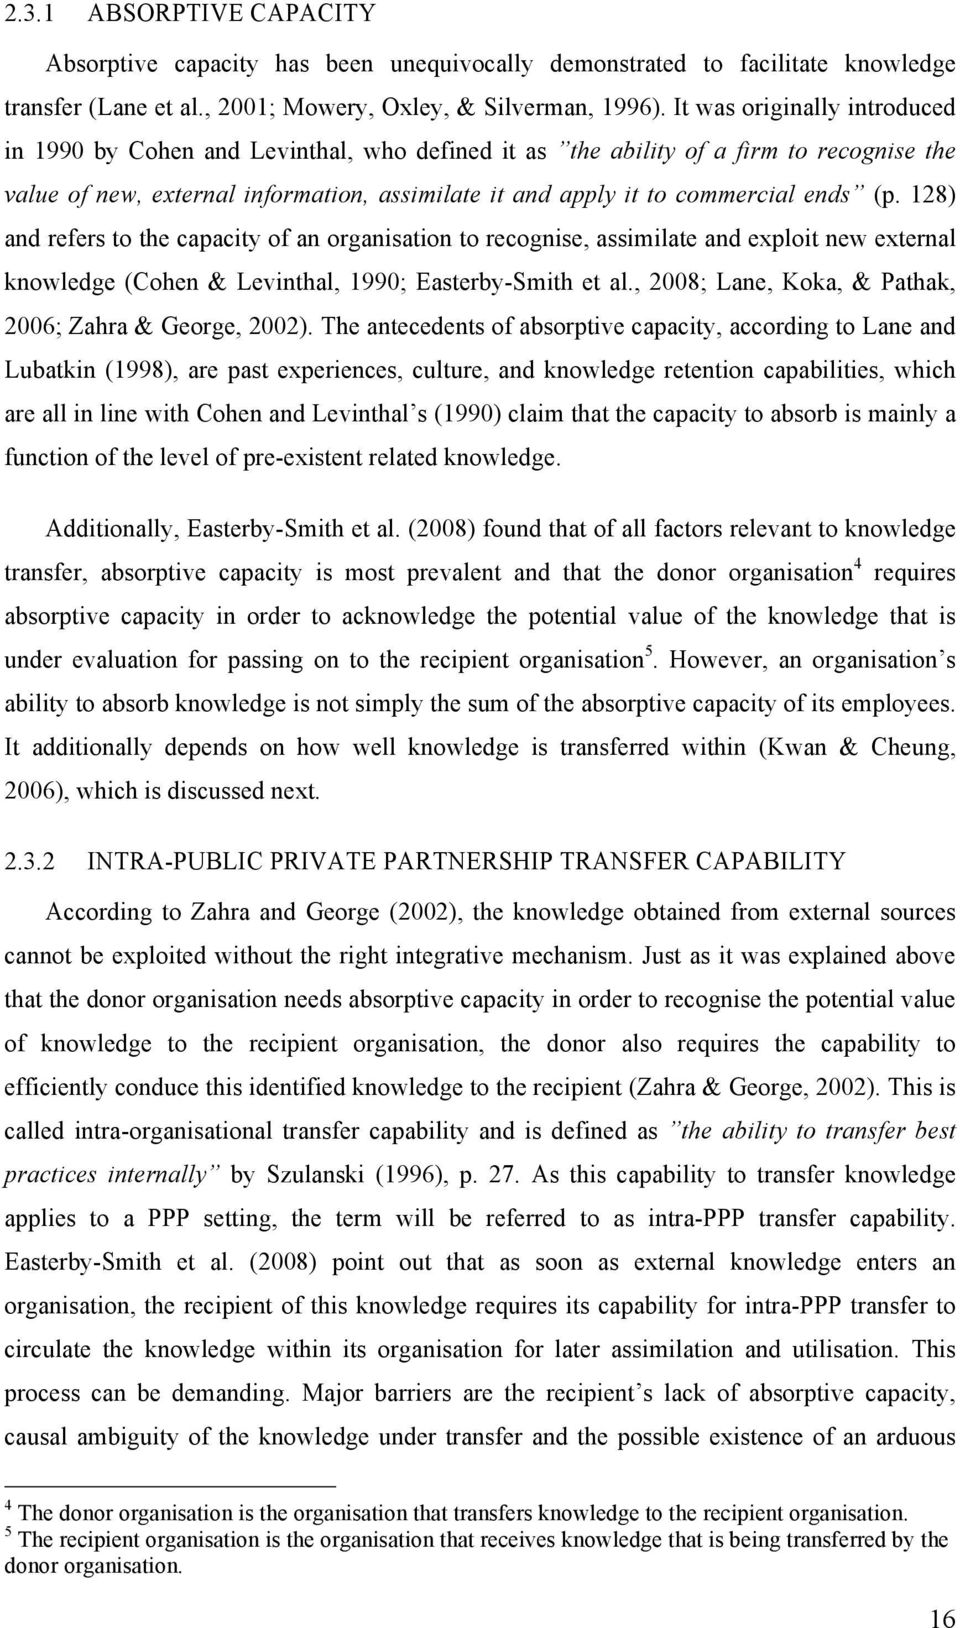 (p. 128) and refers to the capacity of an organisation to recognise, assimilate and exploit new external knowledge (Cohen & Levinthal, 1990; Easterby-Smith et al.